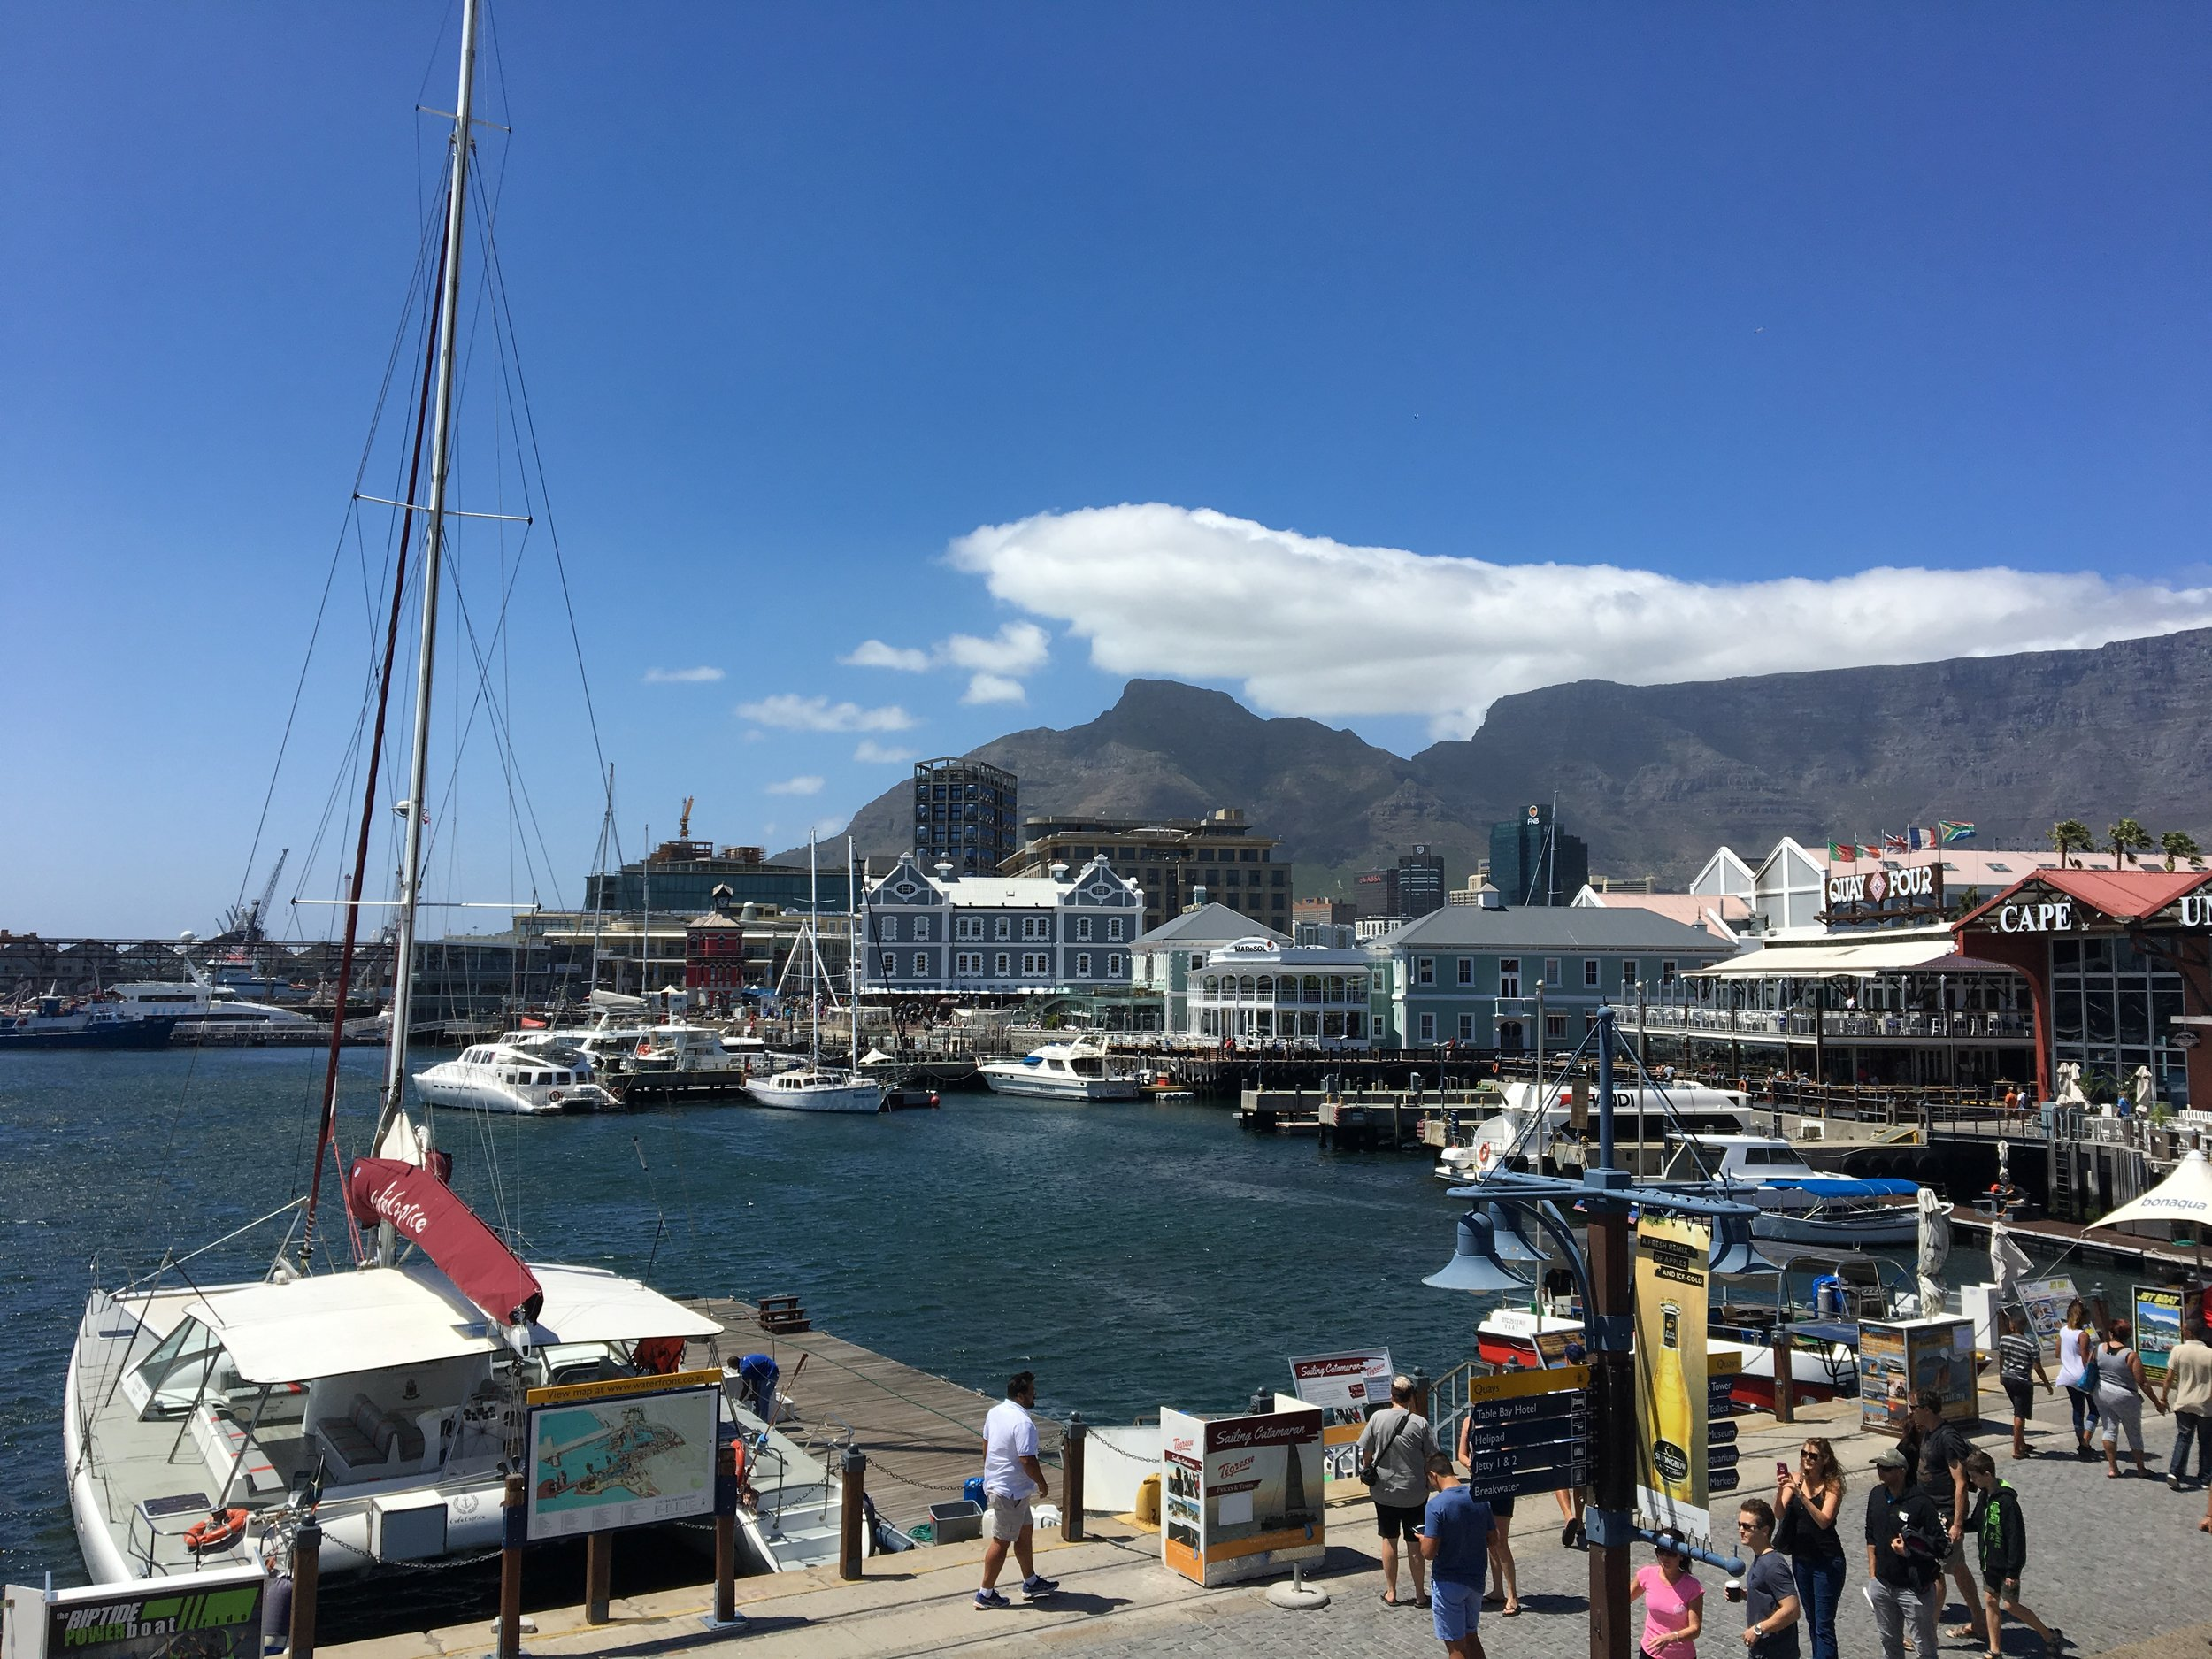 The Victoria & Alfred Waterfront in Cape Town.